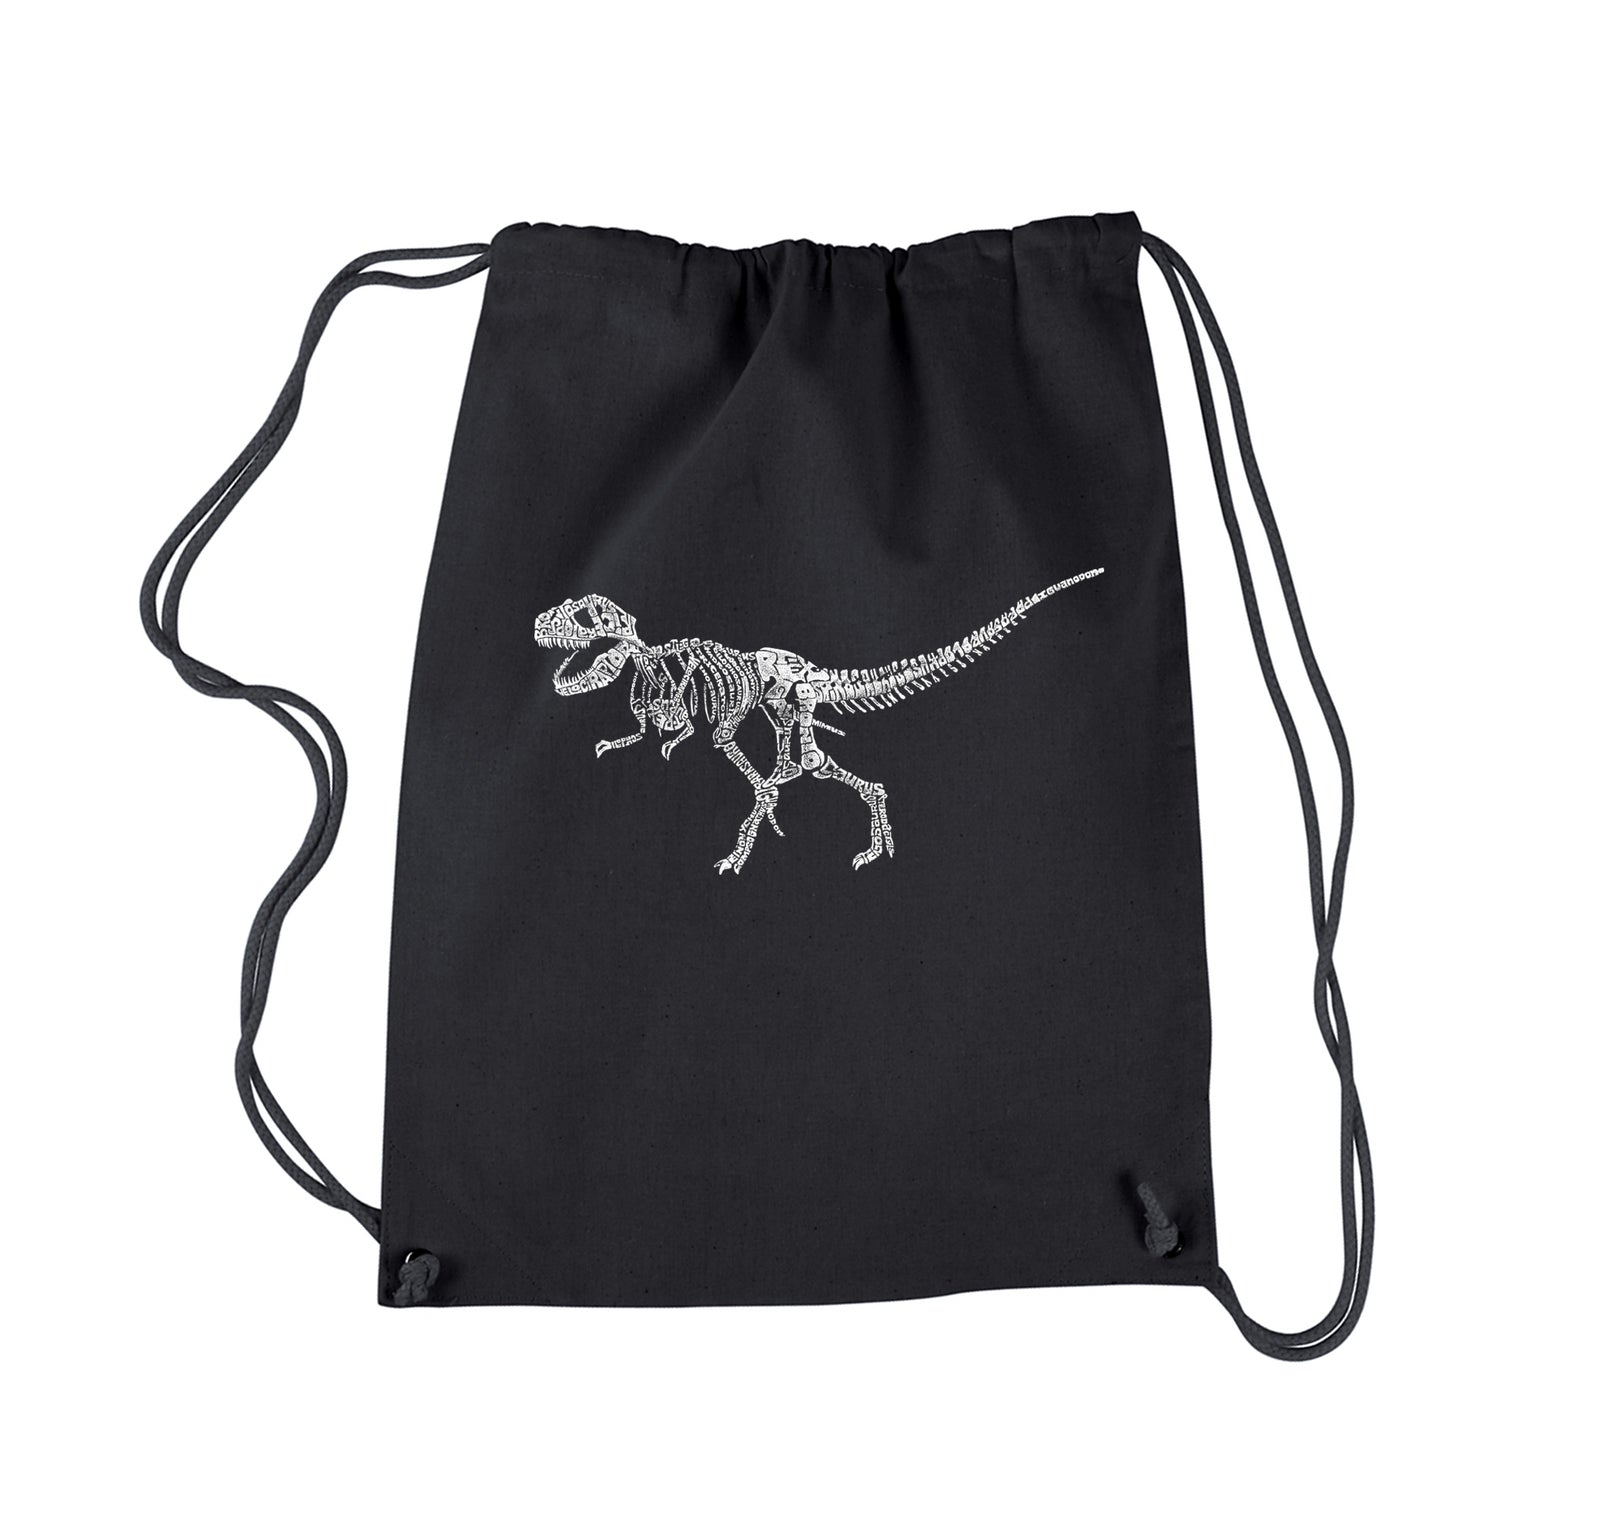 Drawstring Backpack - Dinosaur T-Rex Skeleton